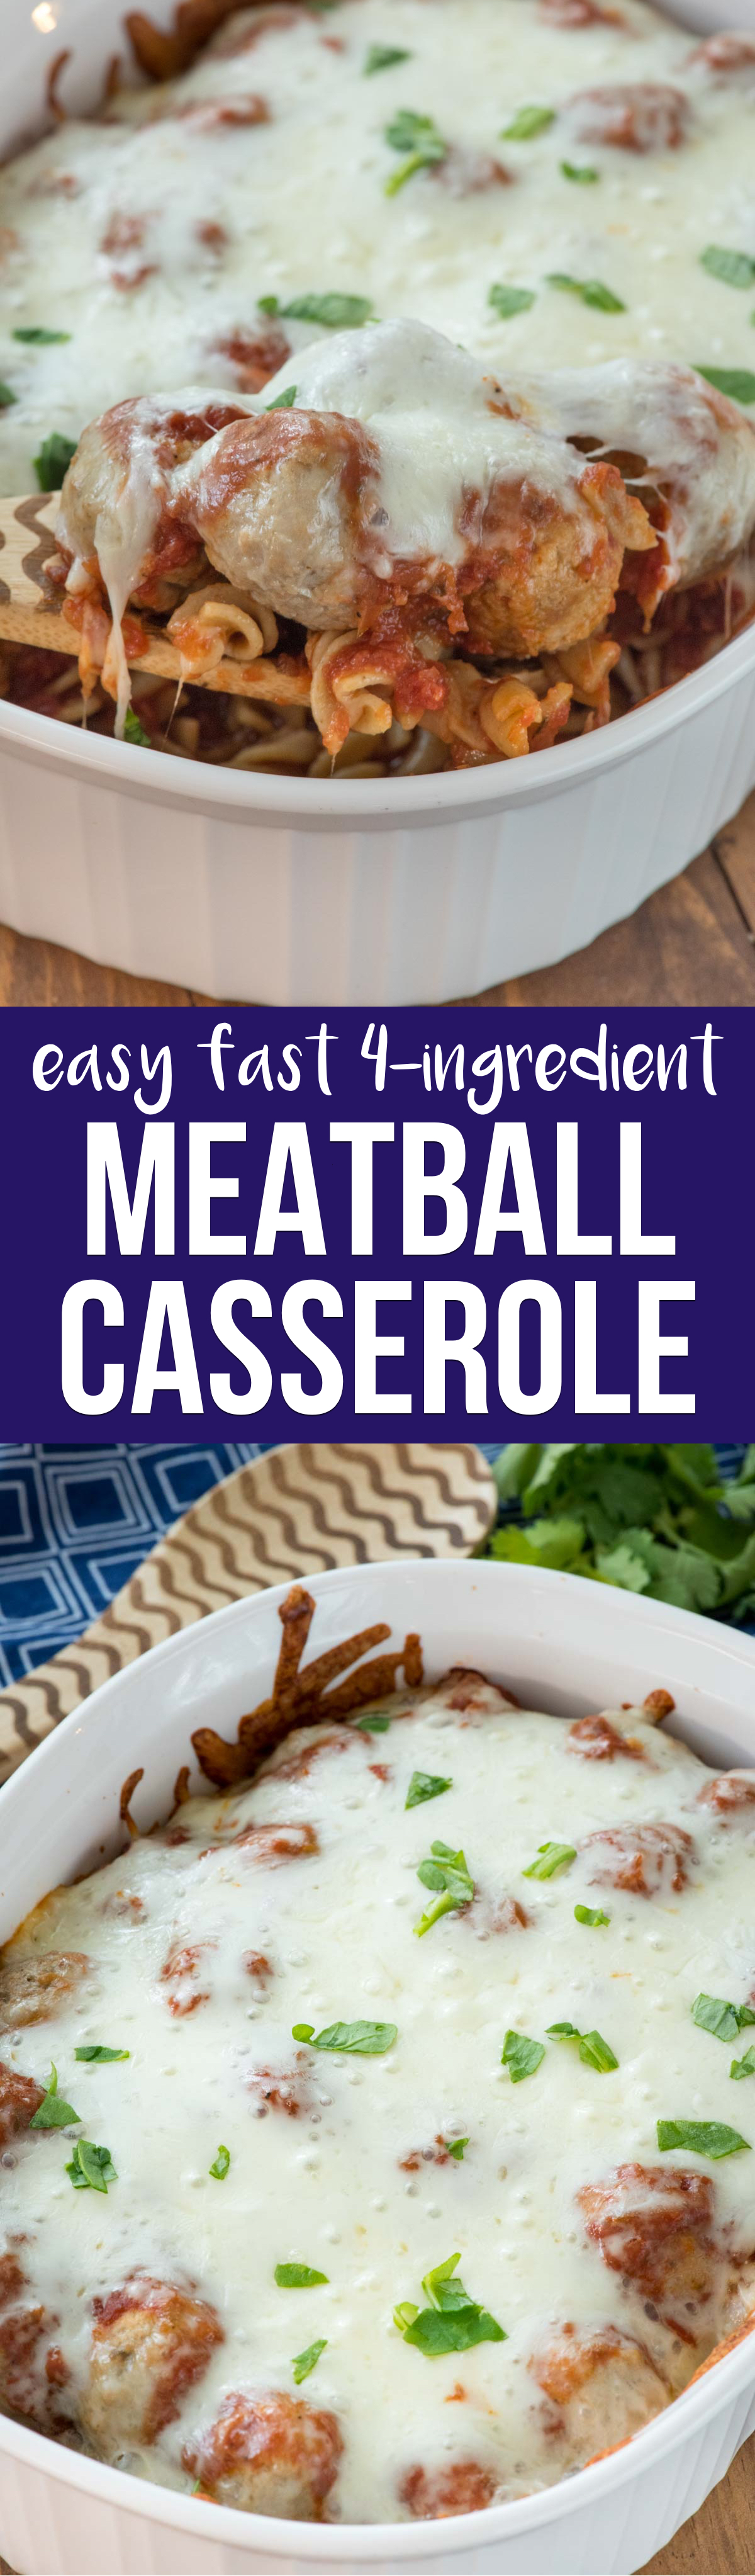 Just 4 ingredients in this EASY Meatball Casserole recipe! It's on the table in under 30 minutes and is the perfect weeknight meal!